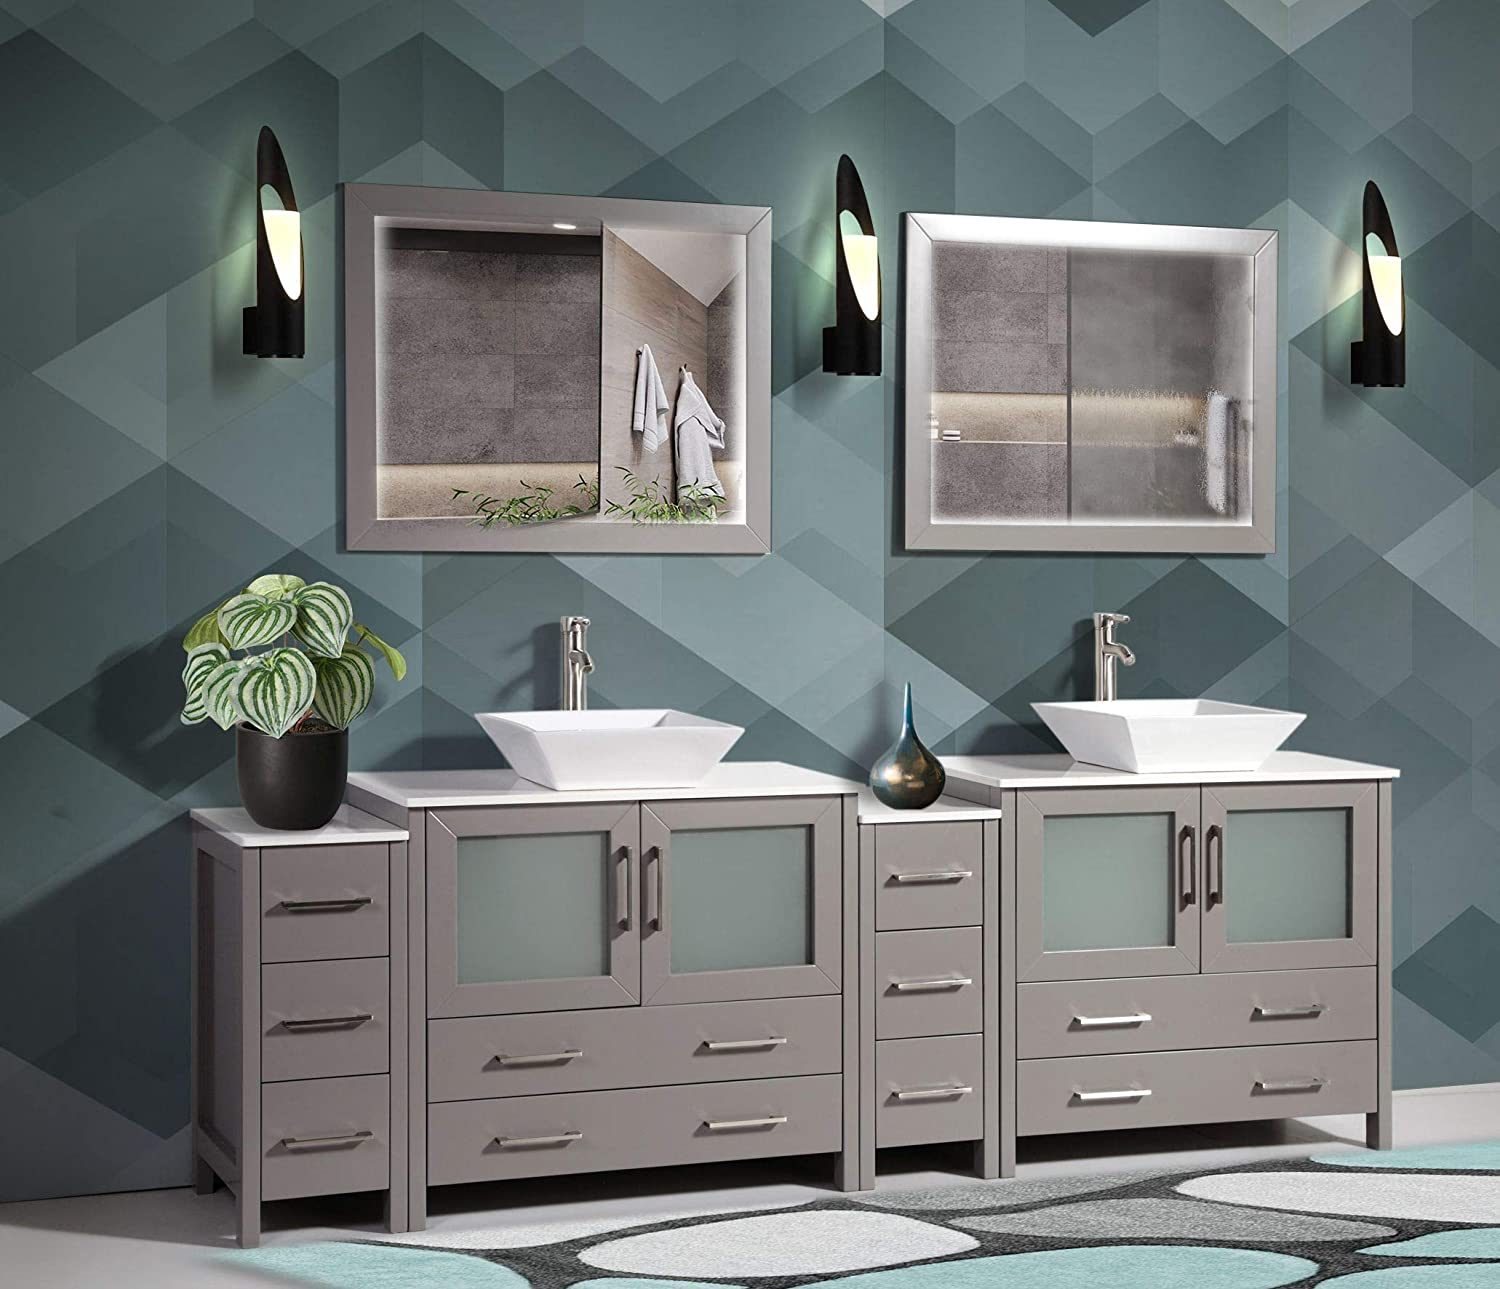 Amazon Com Vanity Art 96 Inch Double Sink Bathroom Vanity Compact Set 4 Cabinets 2 Shelves 10 Dove Tailed Drawers Quartz Top And Ceramic Vessel Sink Bathroom Cabinet With Free Mirror Va3136 96 G Tools